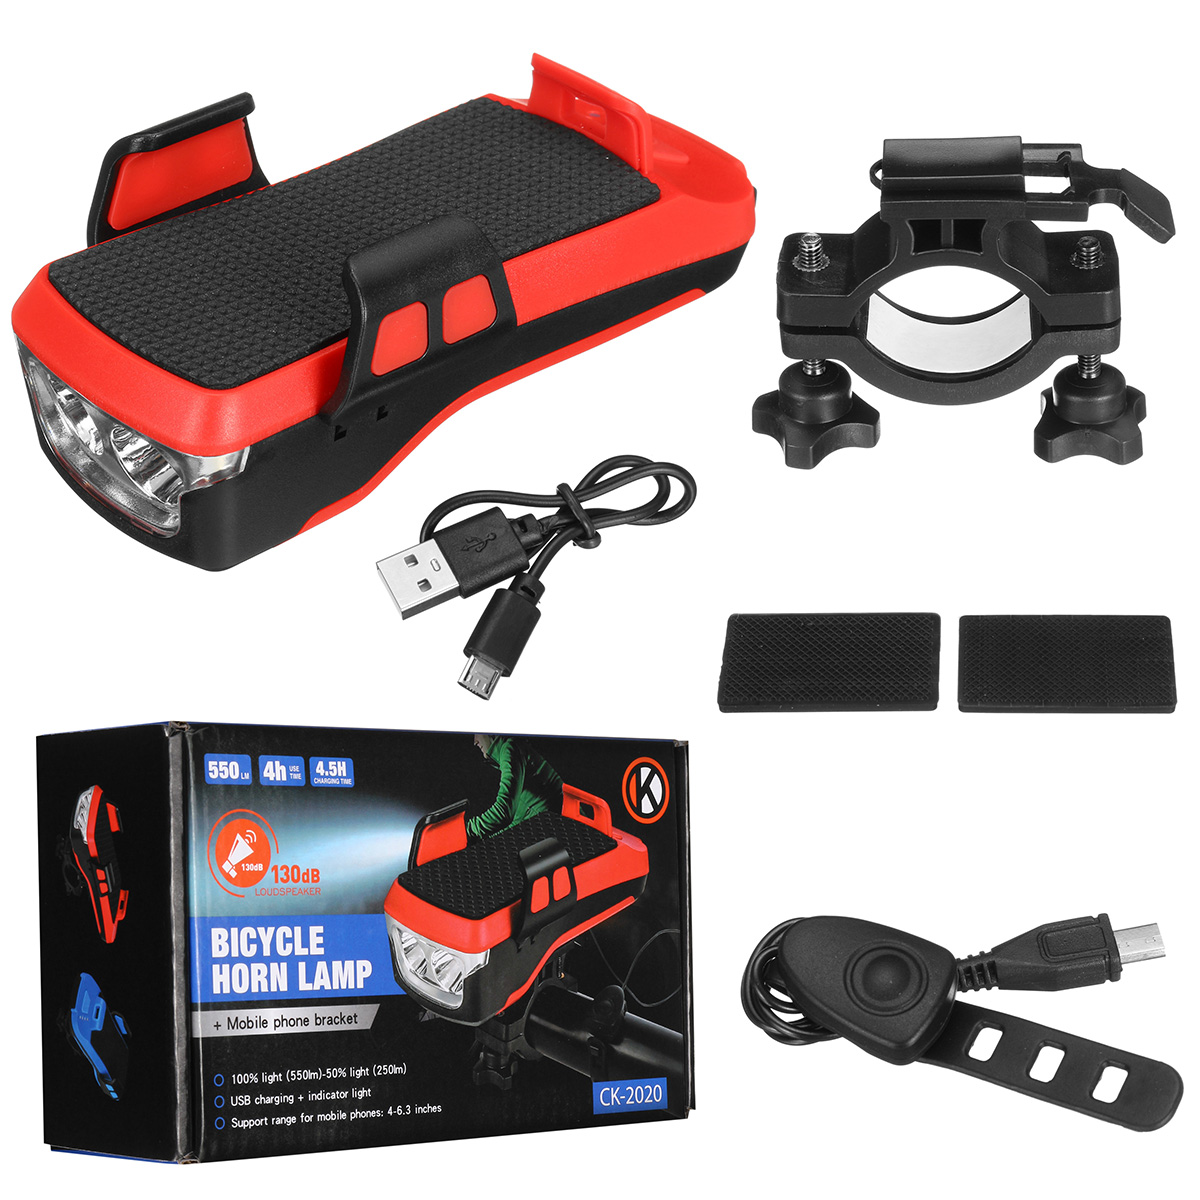 Sudovix Rechargeable Bike Light Front and Back Set,Ultra Bright Headlight with Phone Mount and 130dB Horn,Fast Charge Back Taillight,Built-in 4000mAh Rechargeable Battery